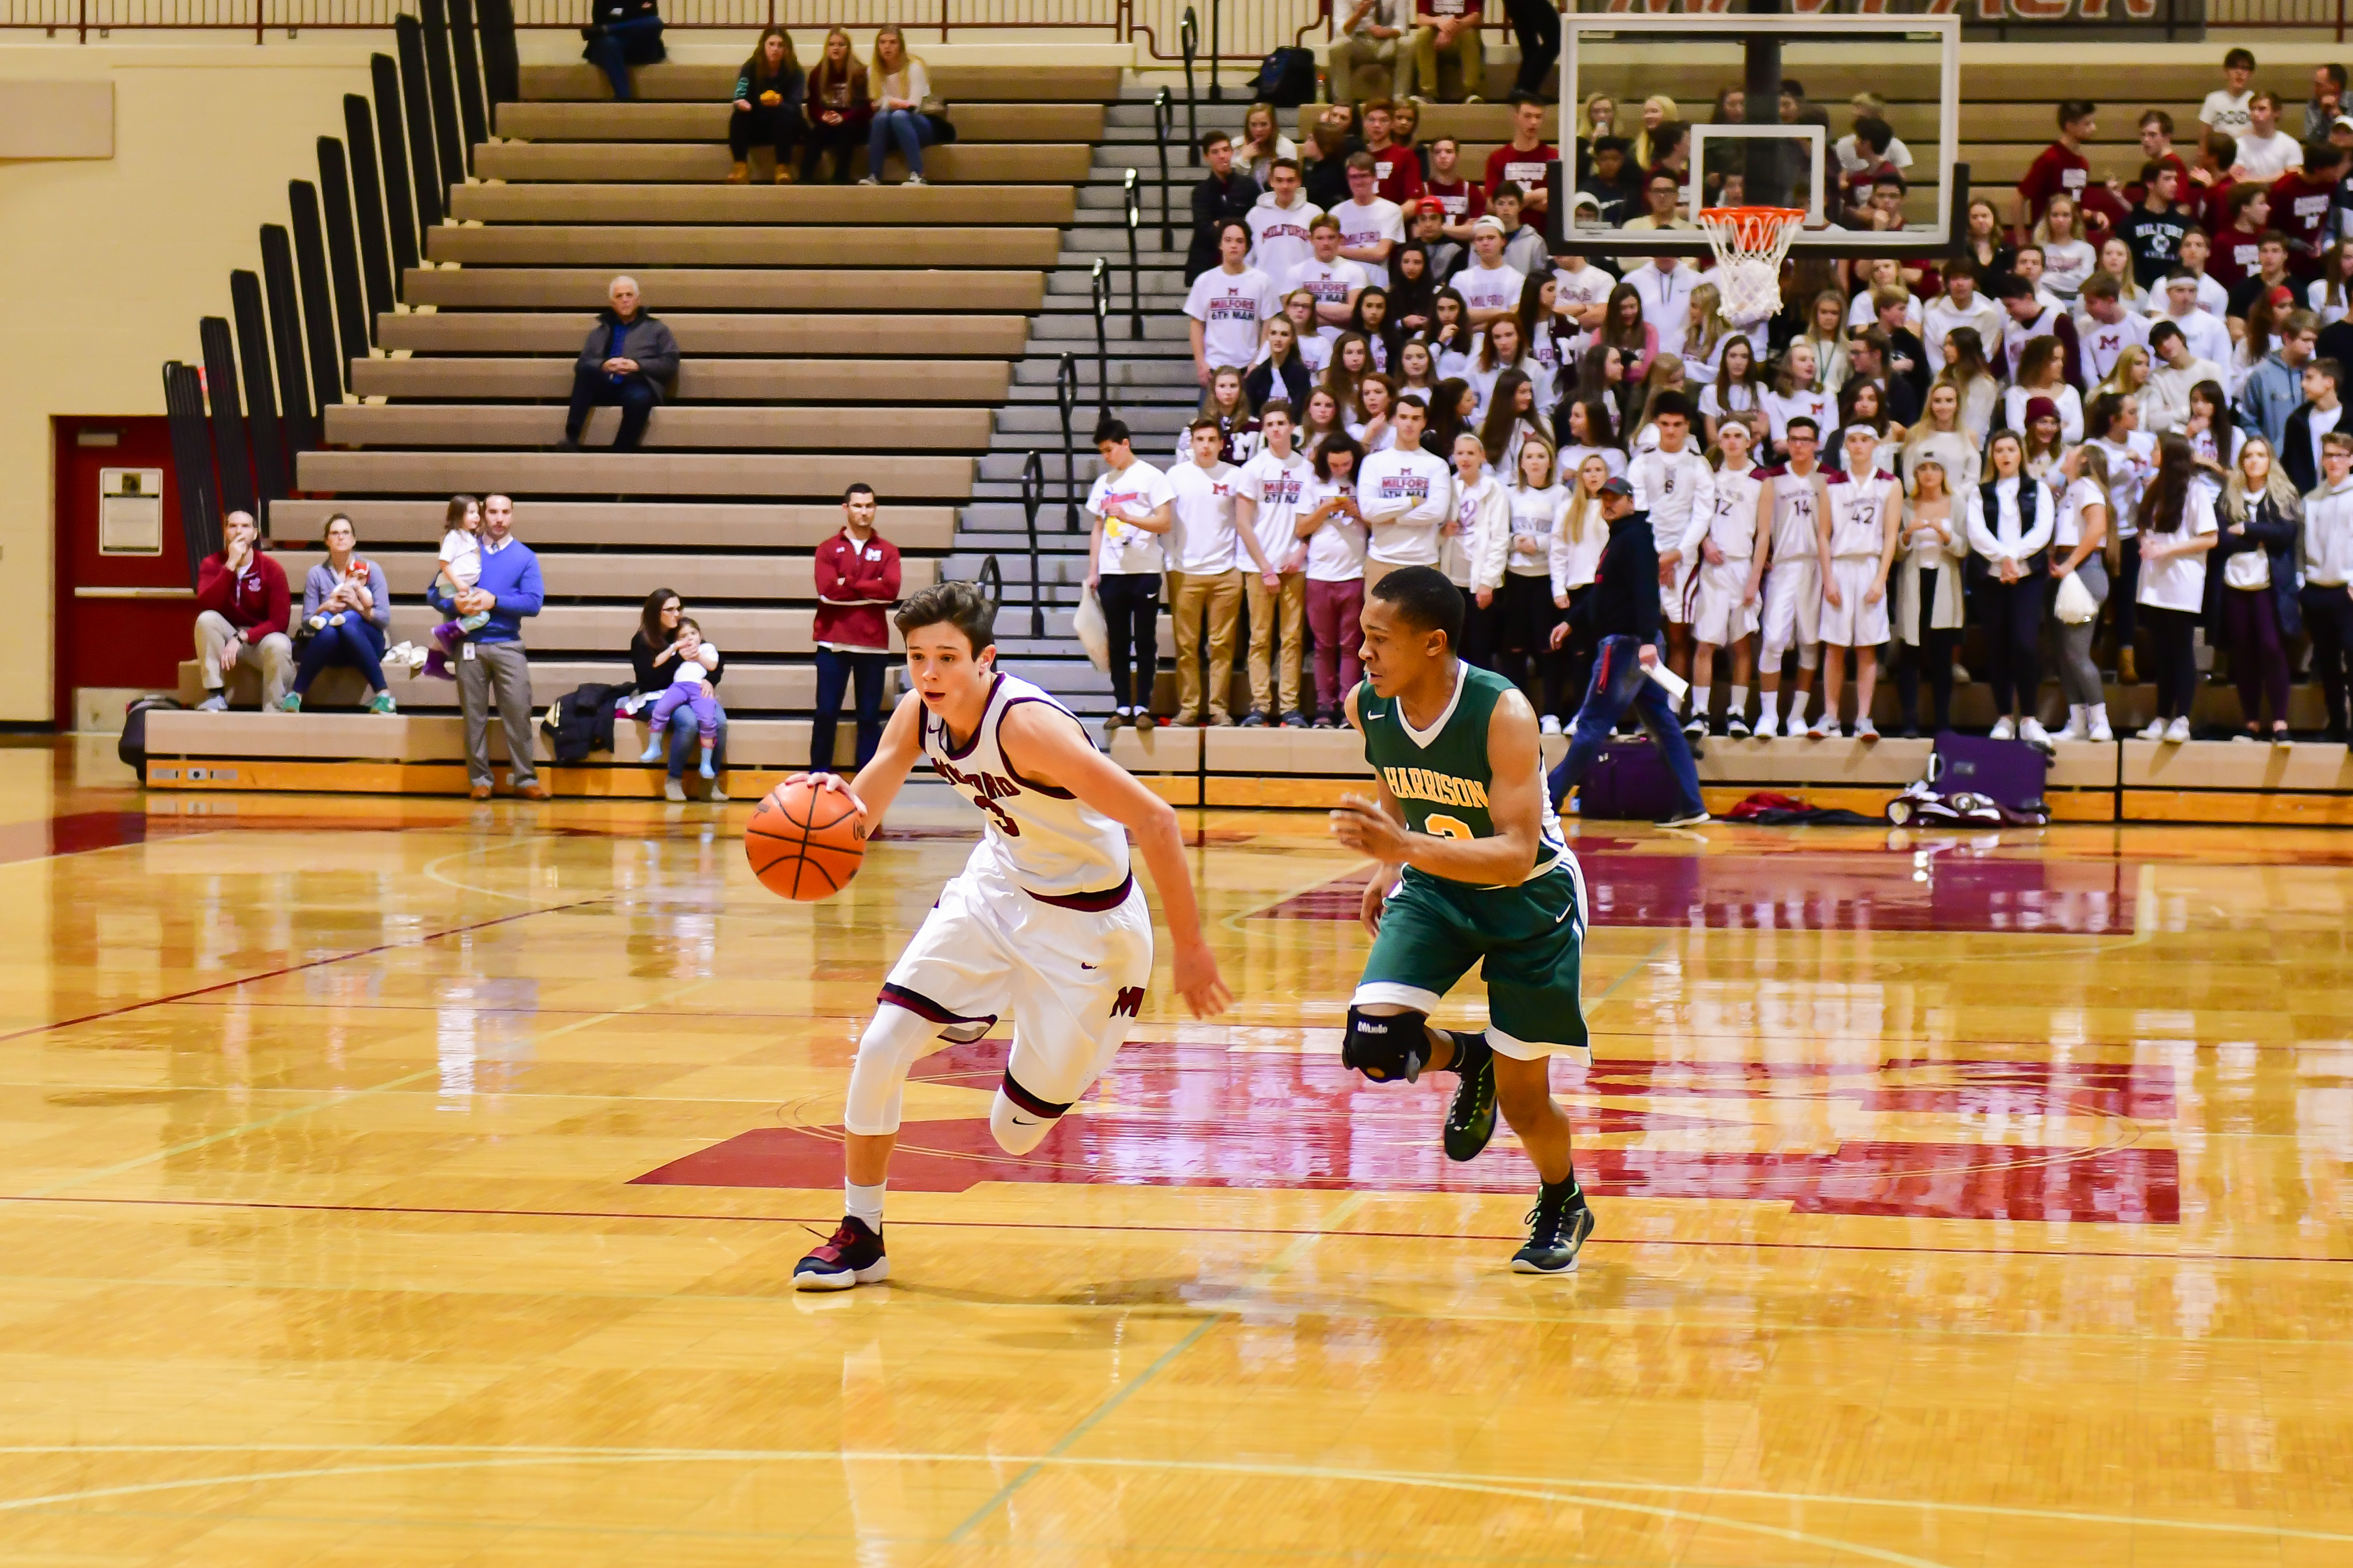 Milford Boys Basketball Start 2018 with a Pair of Road Wins